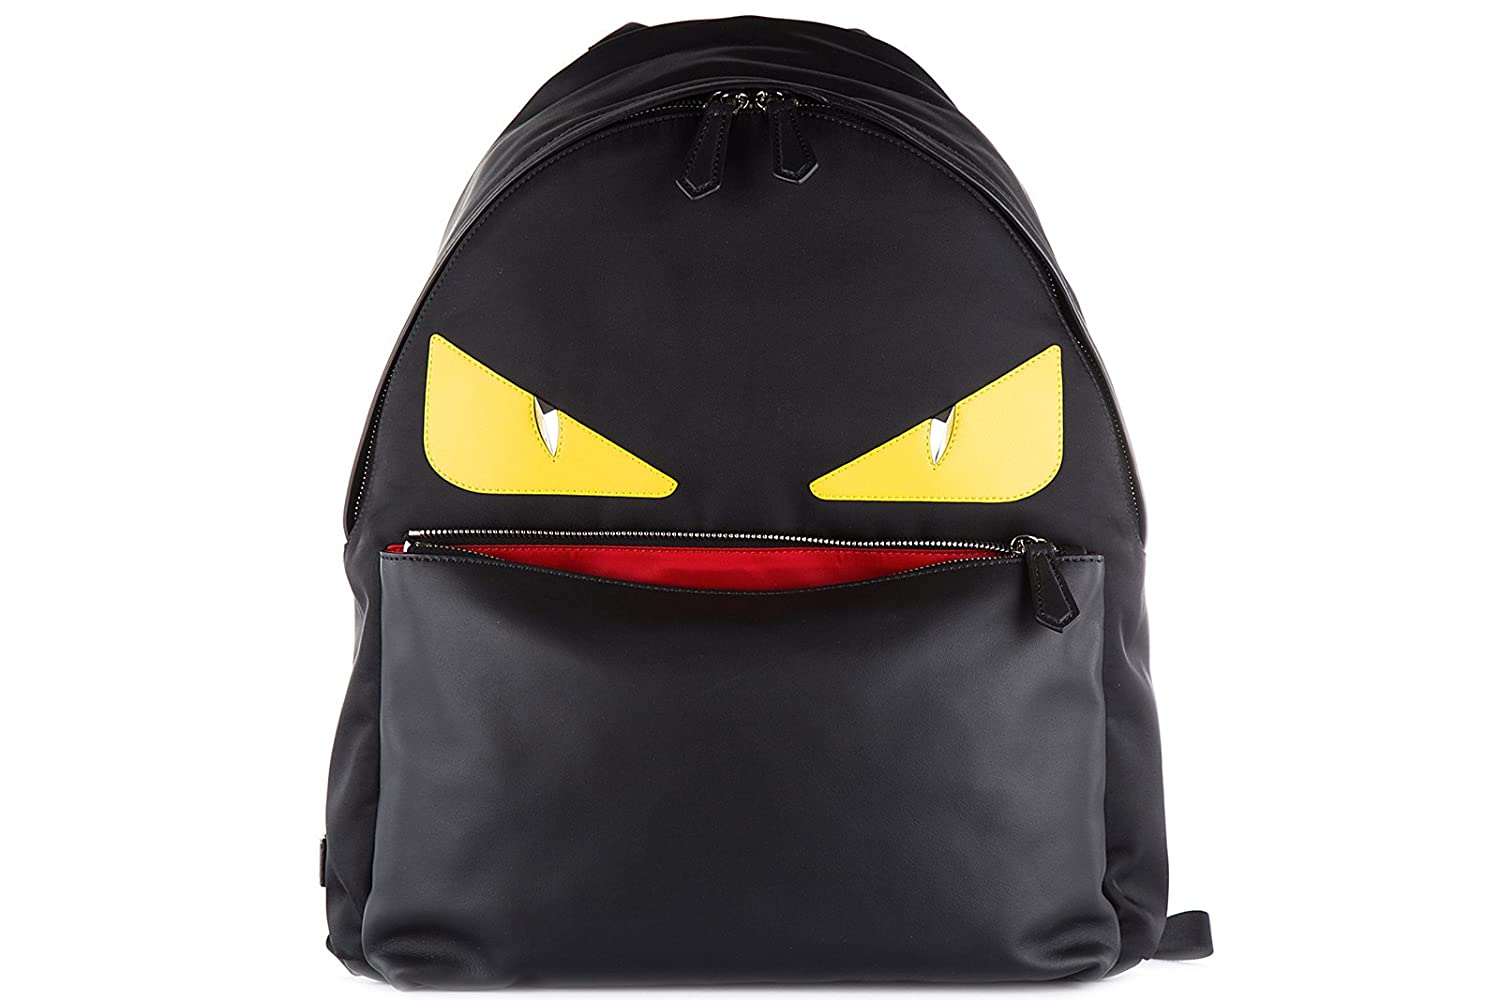 02931af86cce Amazon.com  Fendi men s rucksack backpack travel stondato calfskin century  occhi black  Shoes